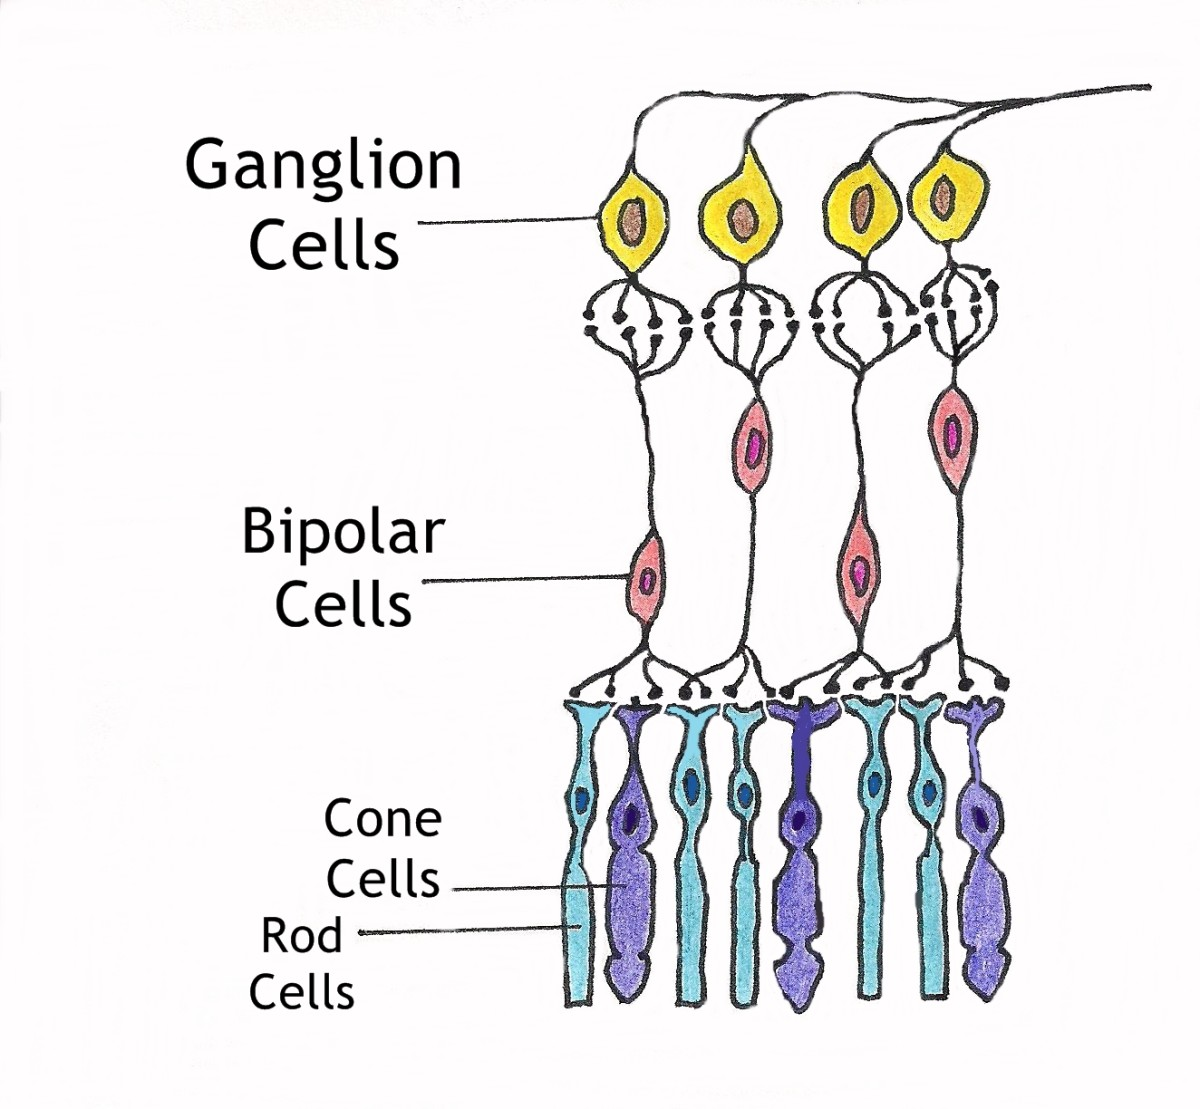 A diagram of the neuronal and photoreceptor layers of the retina. The ganglion and bipolar cells make up the neuronal layer and the rods and cones make up the photoreceptor layer.